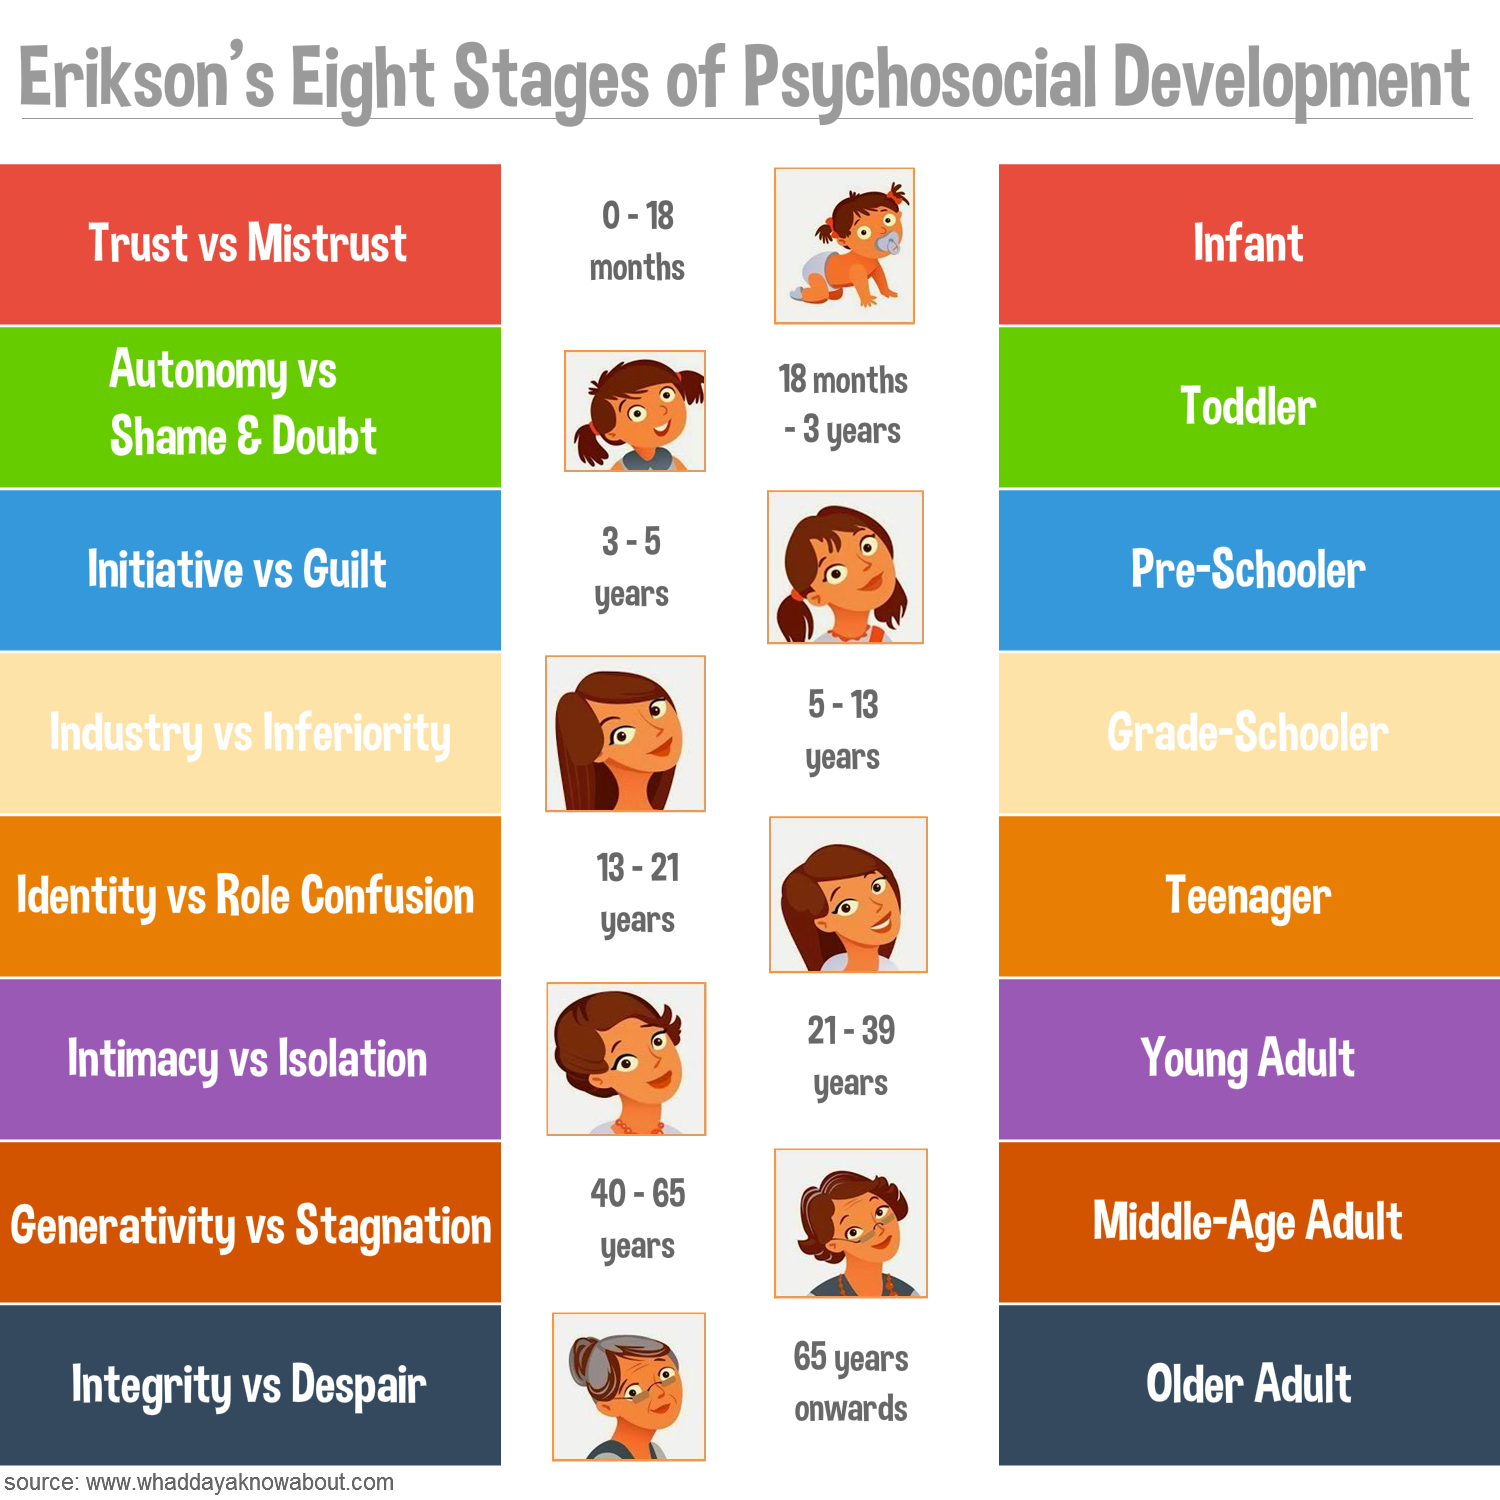 eriksons fifth stage of psychosocial development essay Erikson's stages of psychosocial development  erikson's theory of psychosocial development has eight distinct stage, each with two possible outcomes.